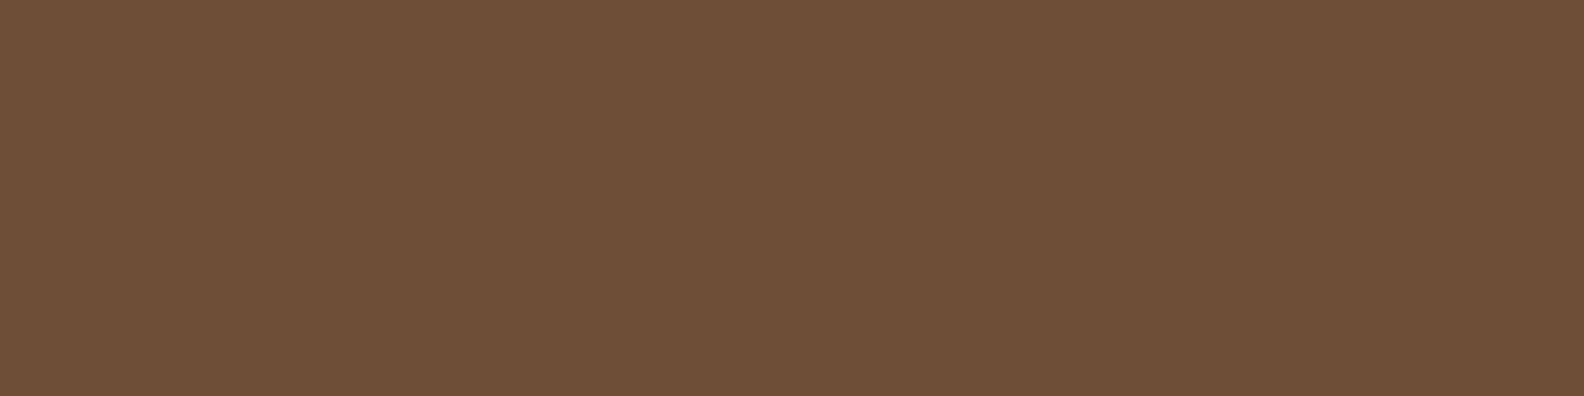 1584x396 Coffee Solid Color Background